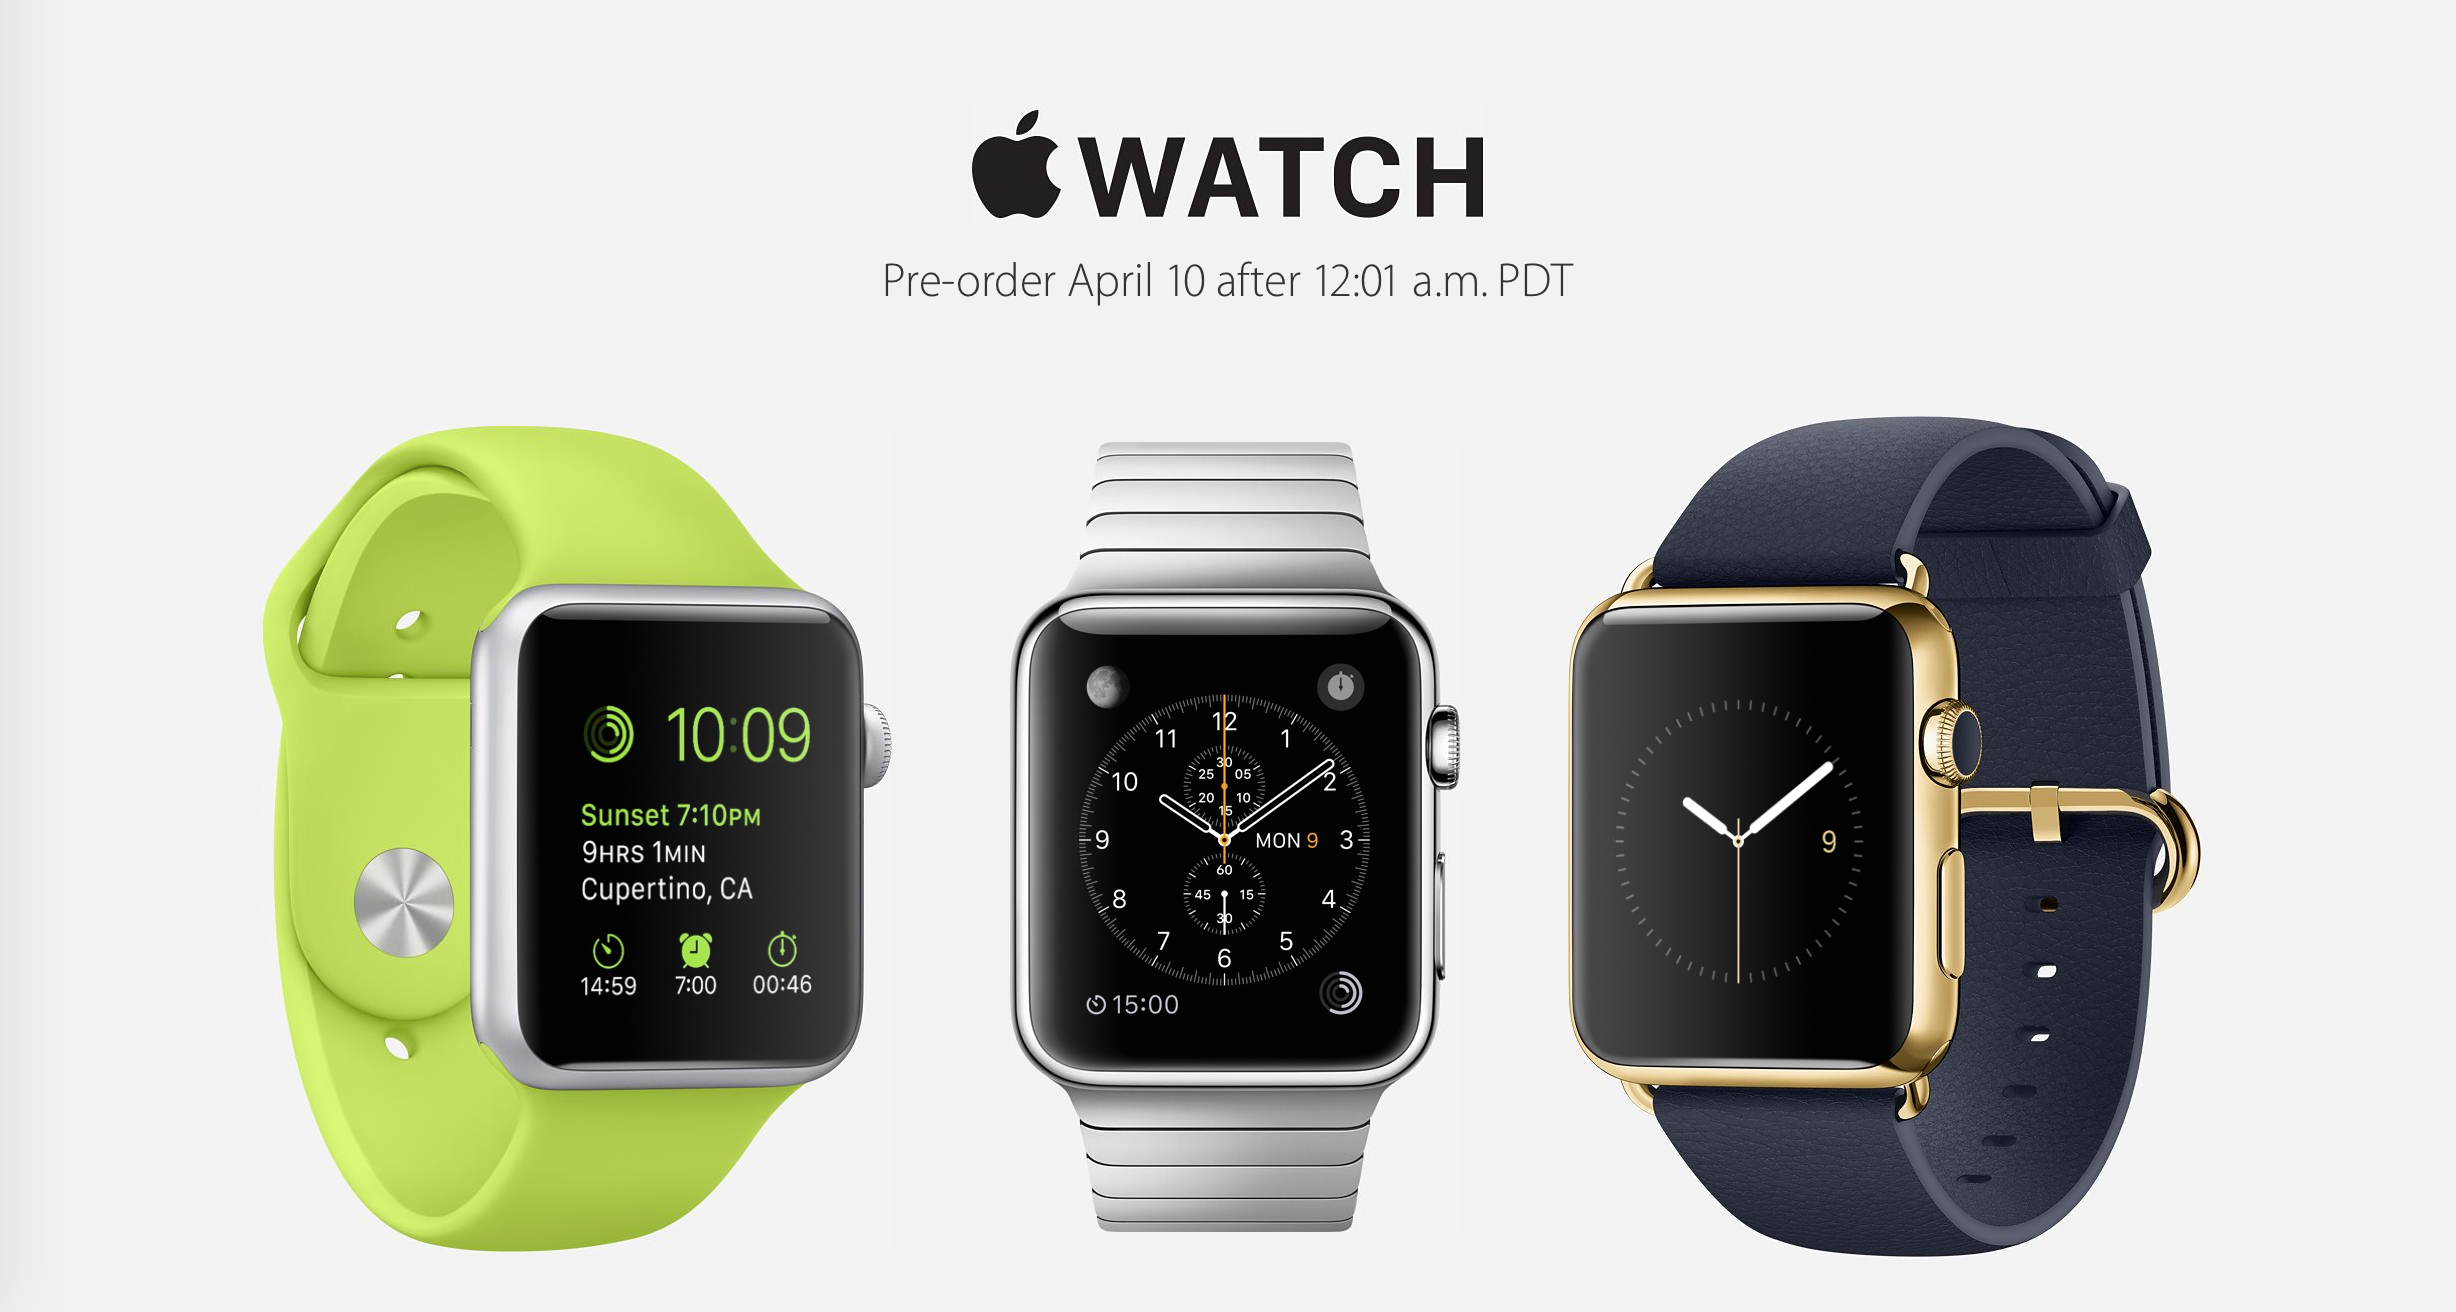 It's almost time: Here are Apple Watch preorder times for all 9 launch countries